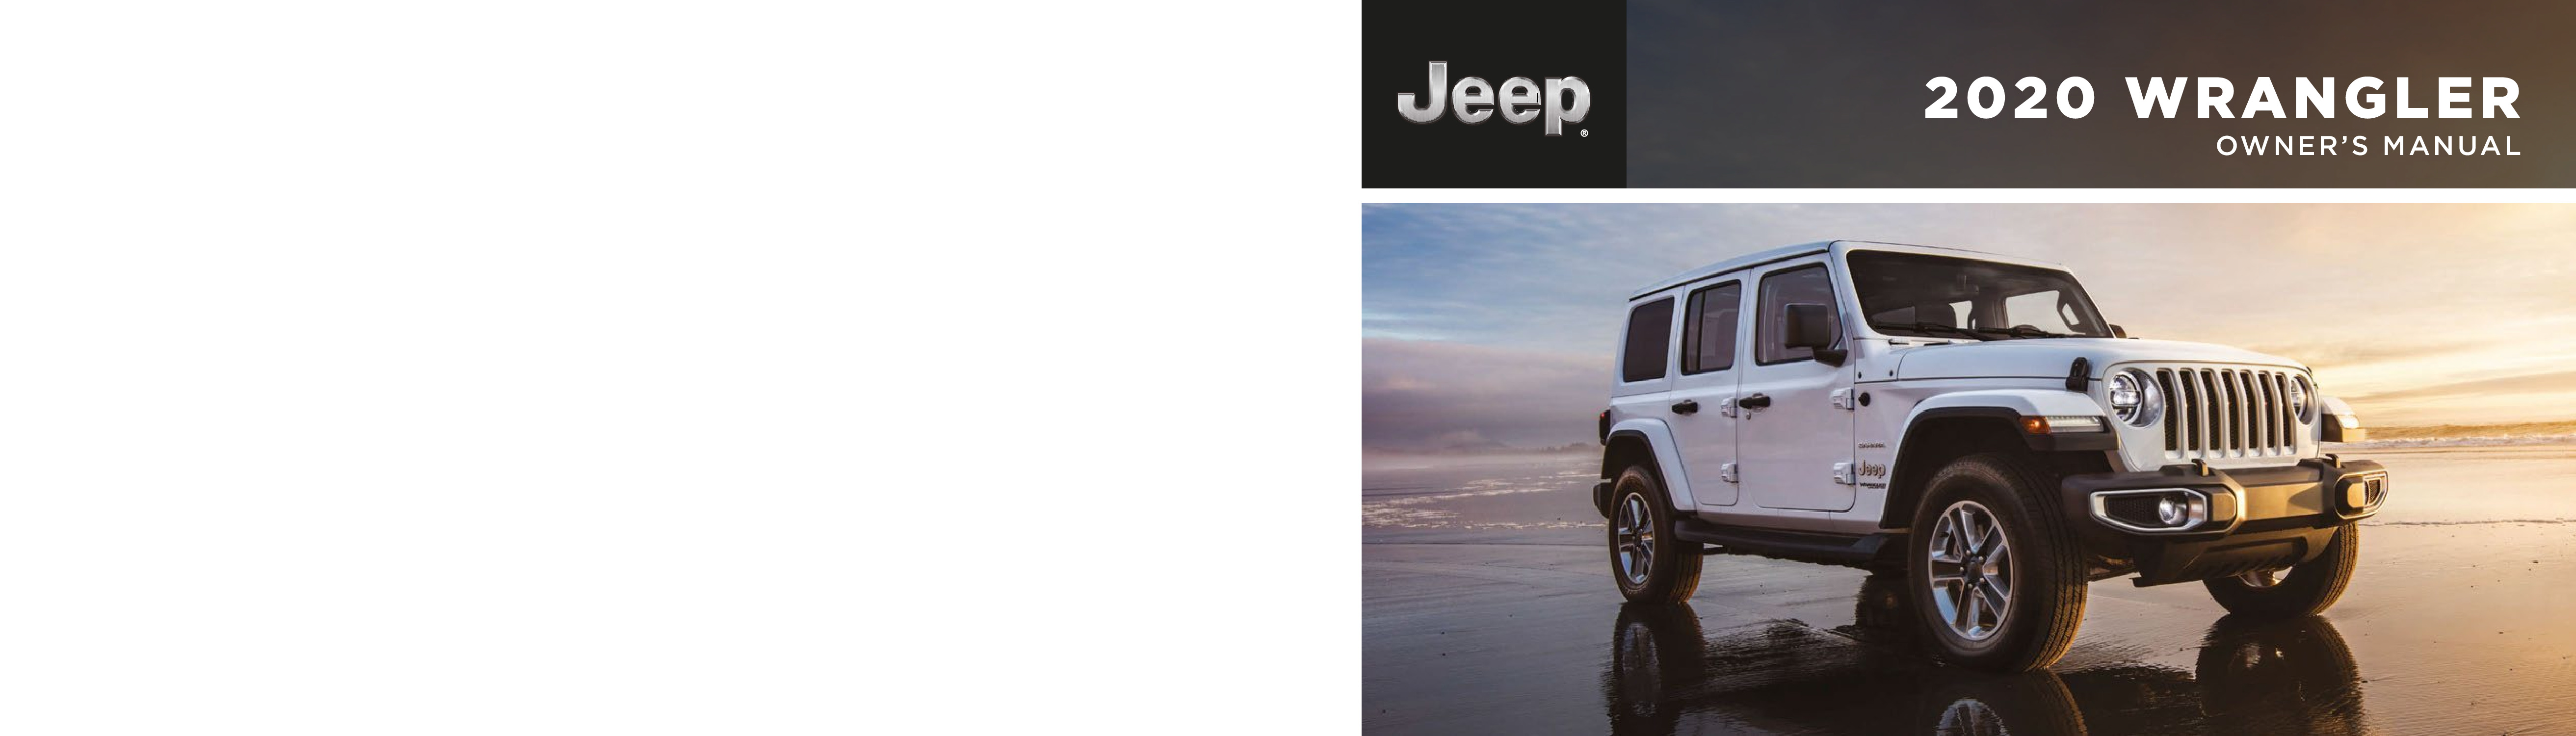 2020 Jeep Wrangler Unlimited owners manual